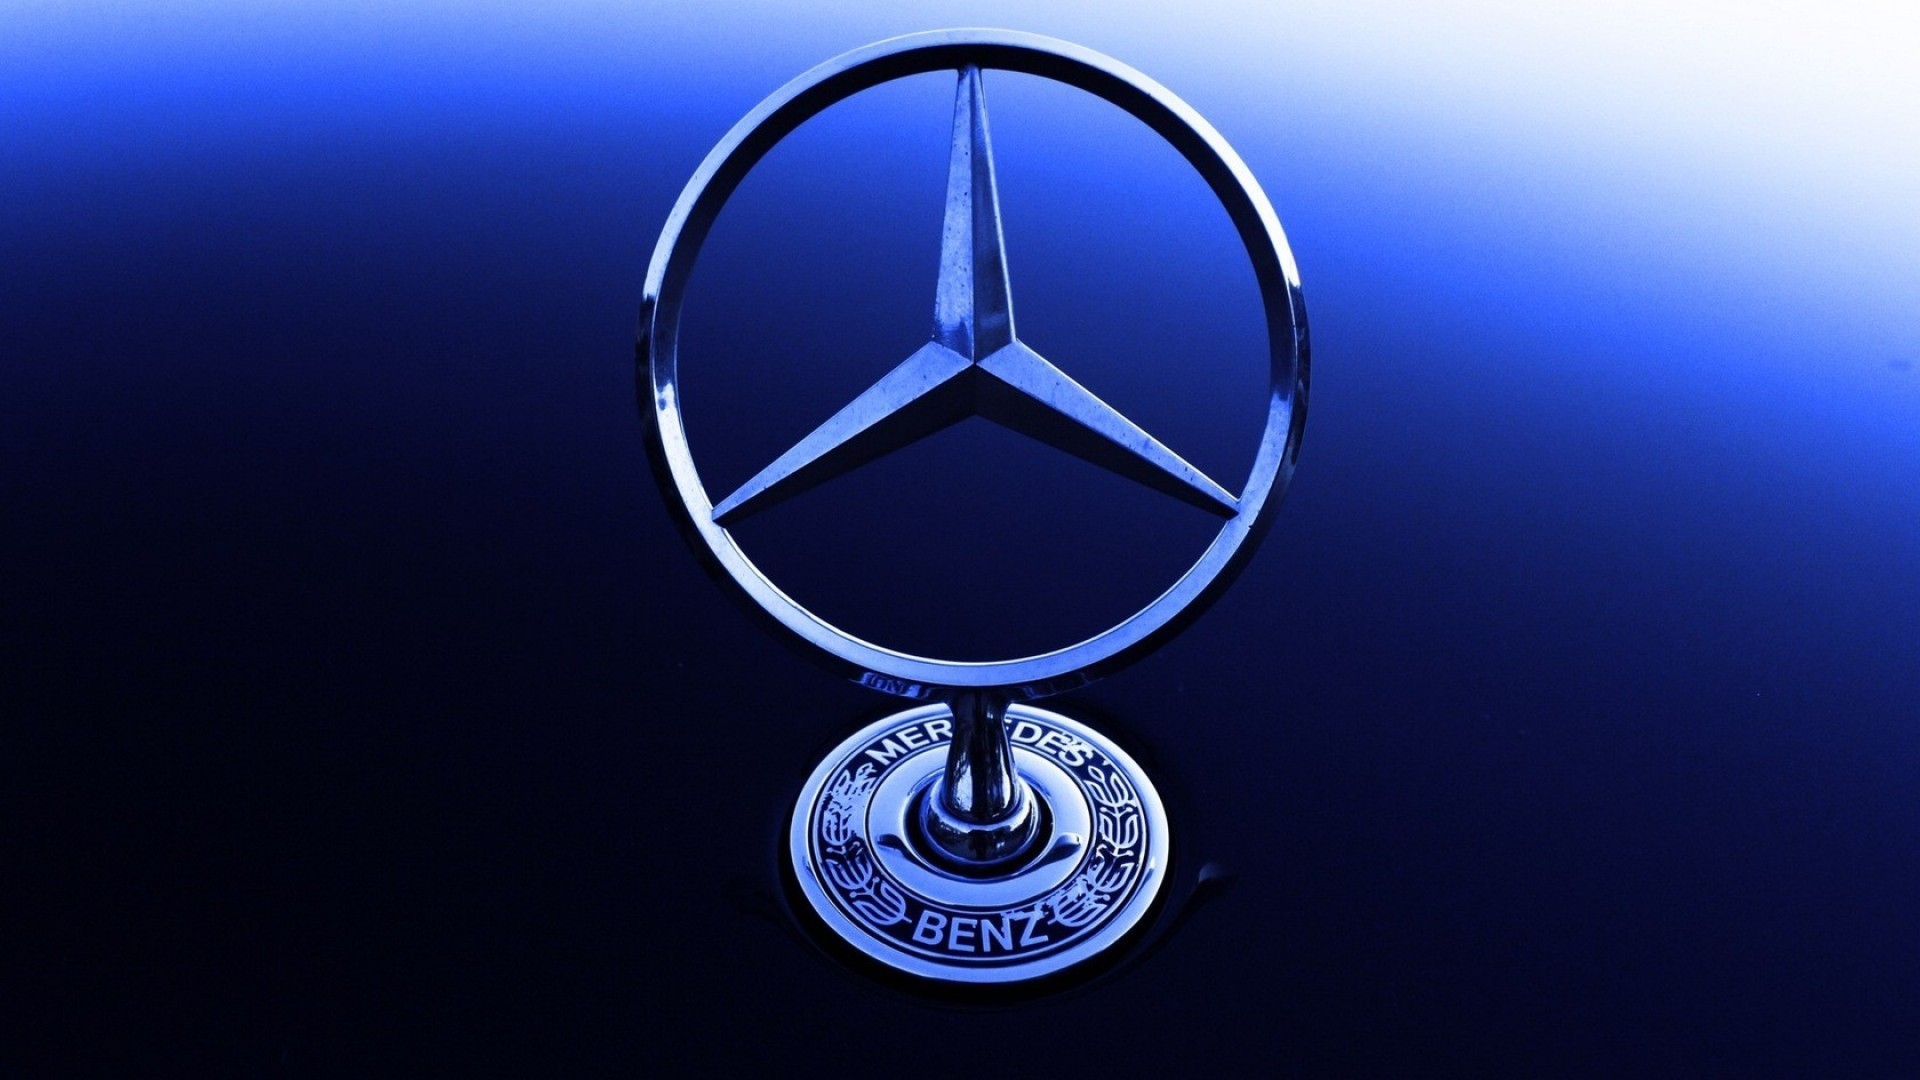 benz logo wallpapers wallpaper - photo #9